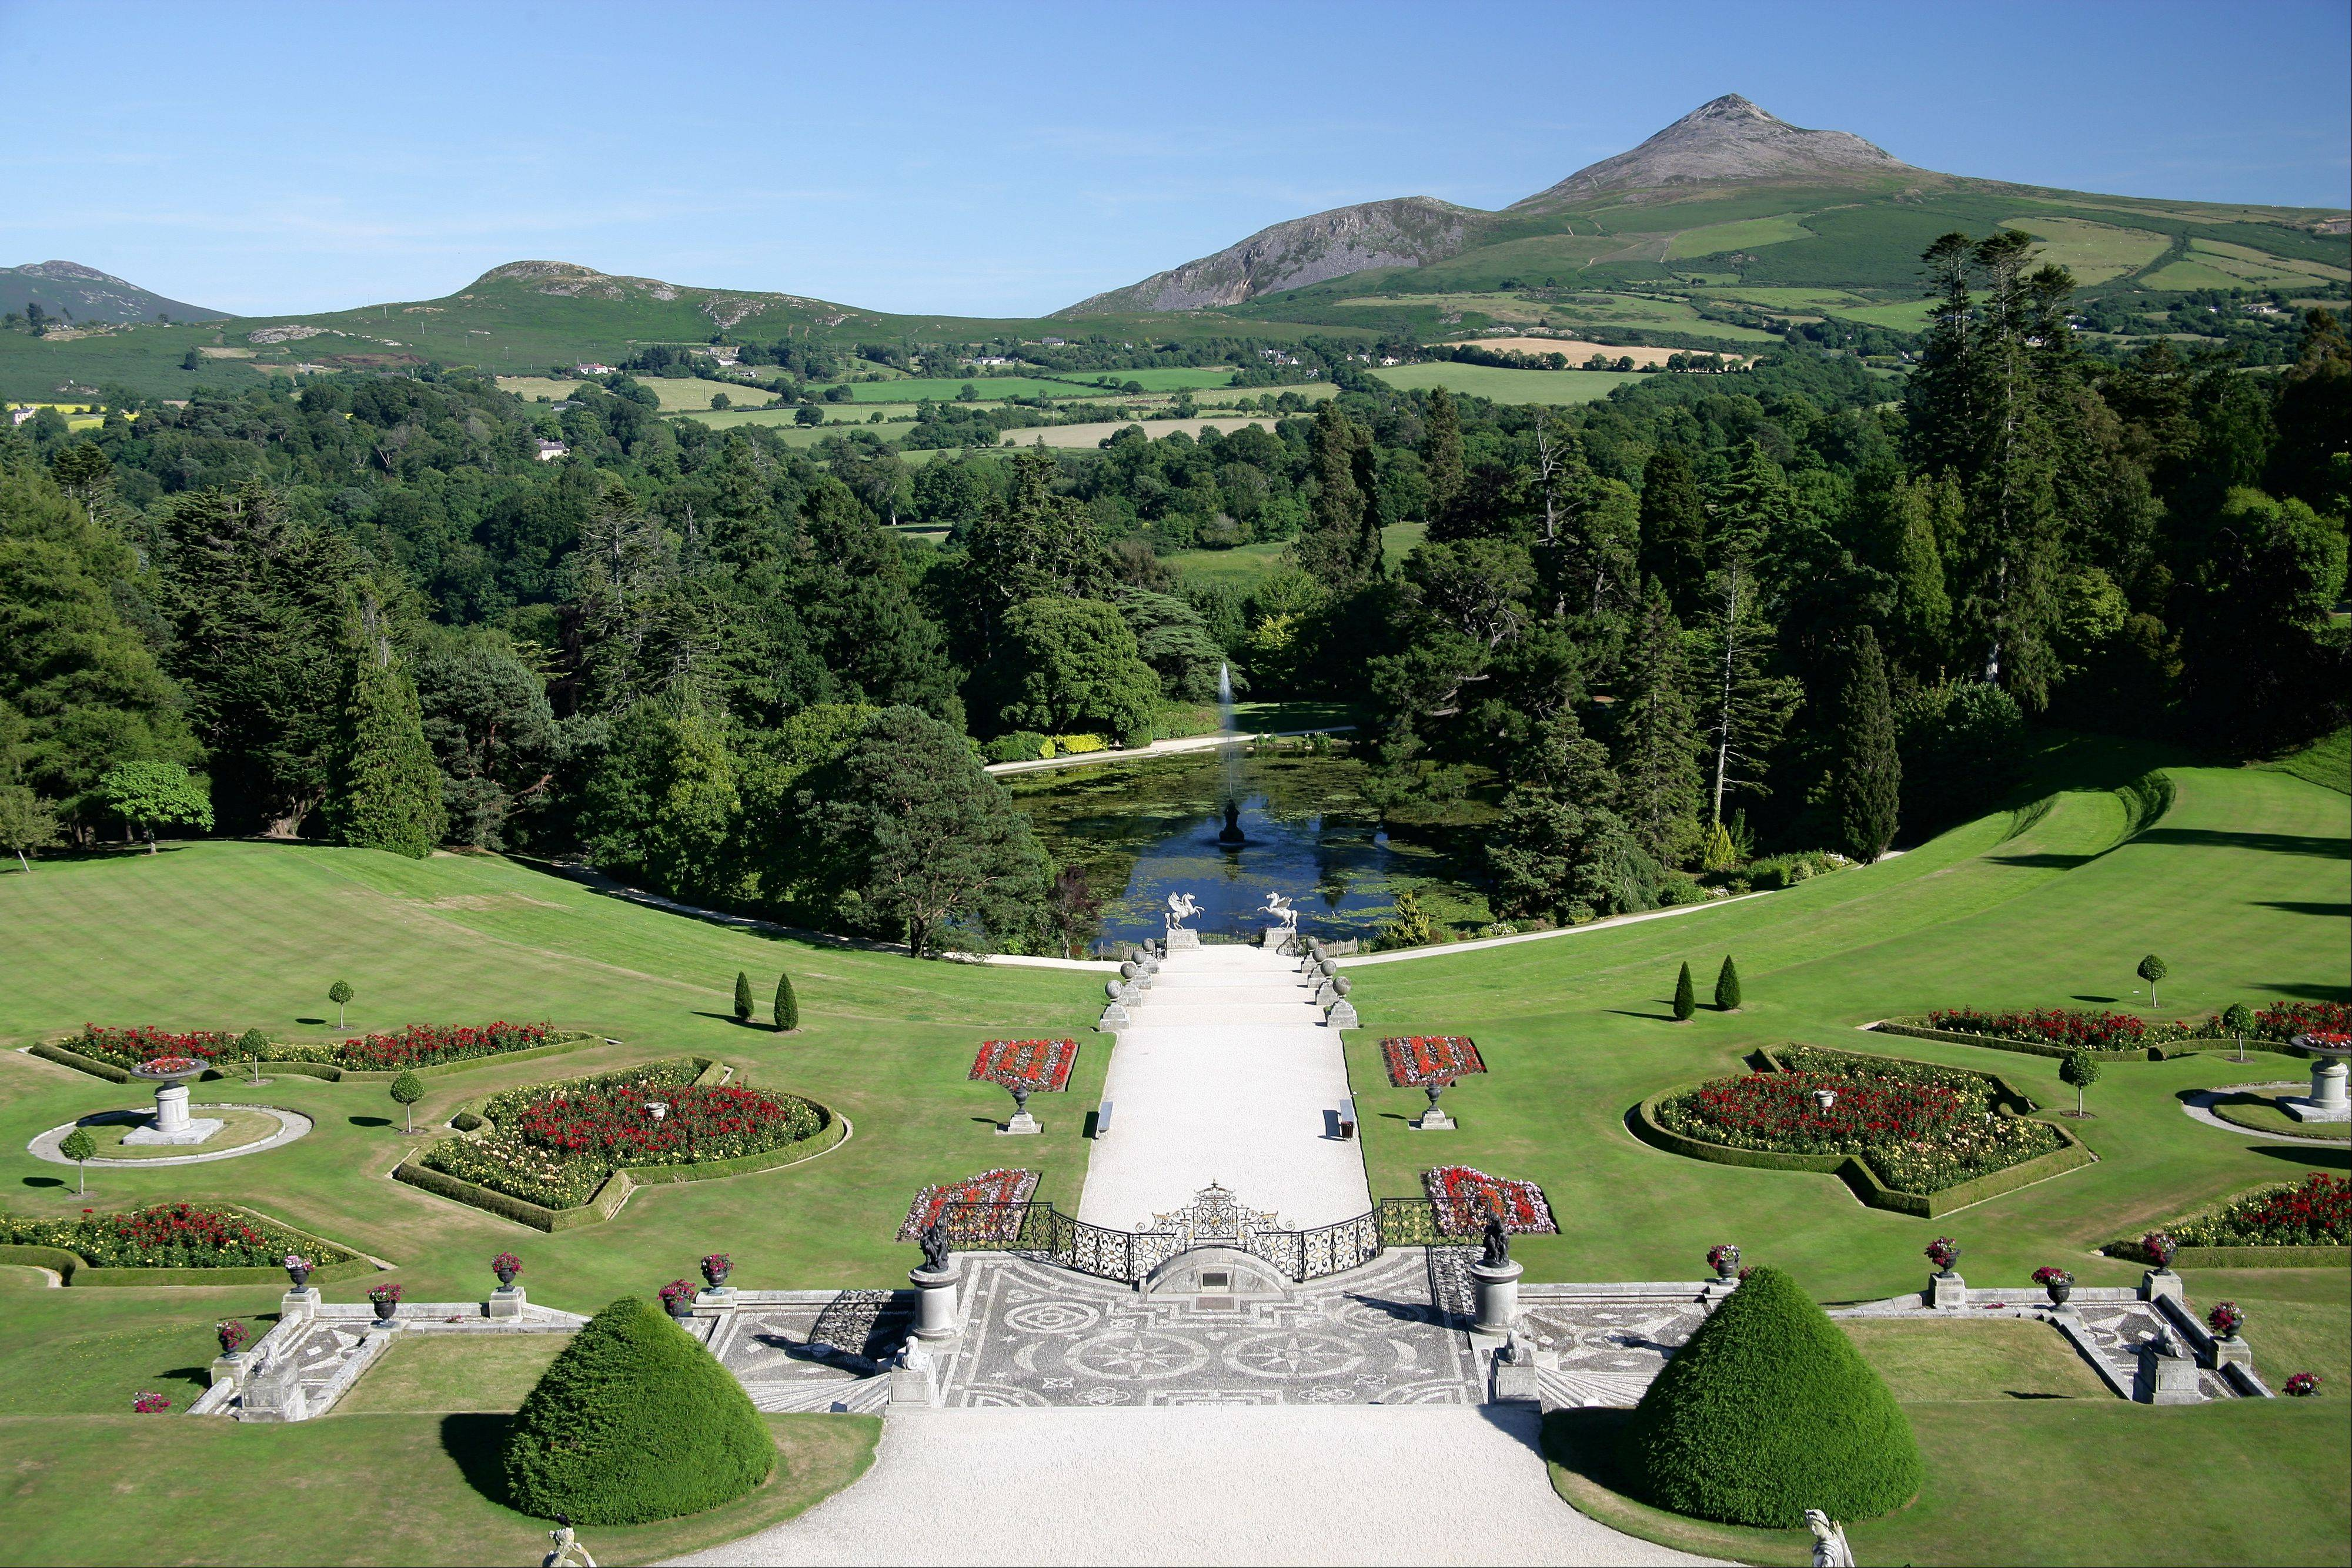 This undated photo from the Powerscourt Estate shows the gardens and grounds of the estate in Enniskerry, County Wicklow, Ireland, with the Wicklow Mountains in the background. The Powerscourt Estate and other great houses, castles and gardens in Ireland are hosting events connected to The Gathering, a yearlong nationwide event inviting Irish emigrants and their descendants home to celebrate their heritage. Powerscourt recently hosted a talk by a genealogist to help visitors track their �Wicklow roots.� (AP Photo/Powerscourt Estate)